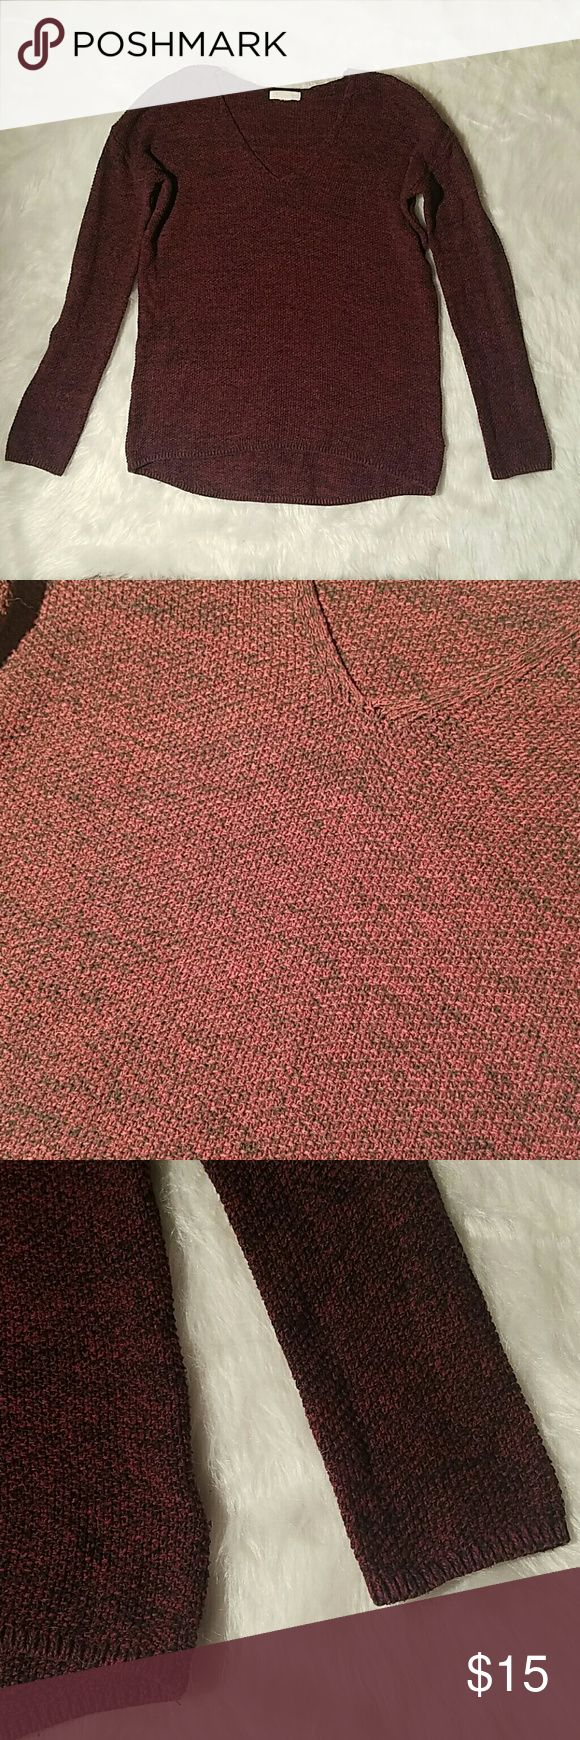 Maroon V-neck sweater Maroon and black marled sweater, EUC, soft cotton/ polyester blend Sweaters V-Necks